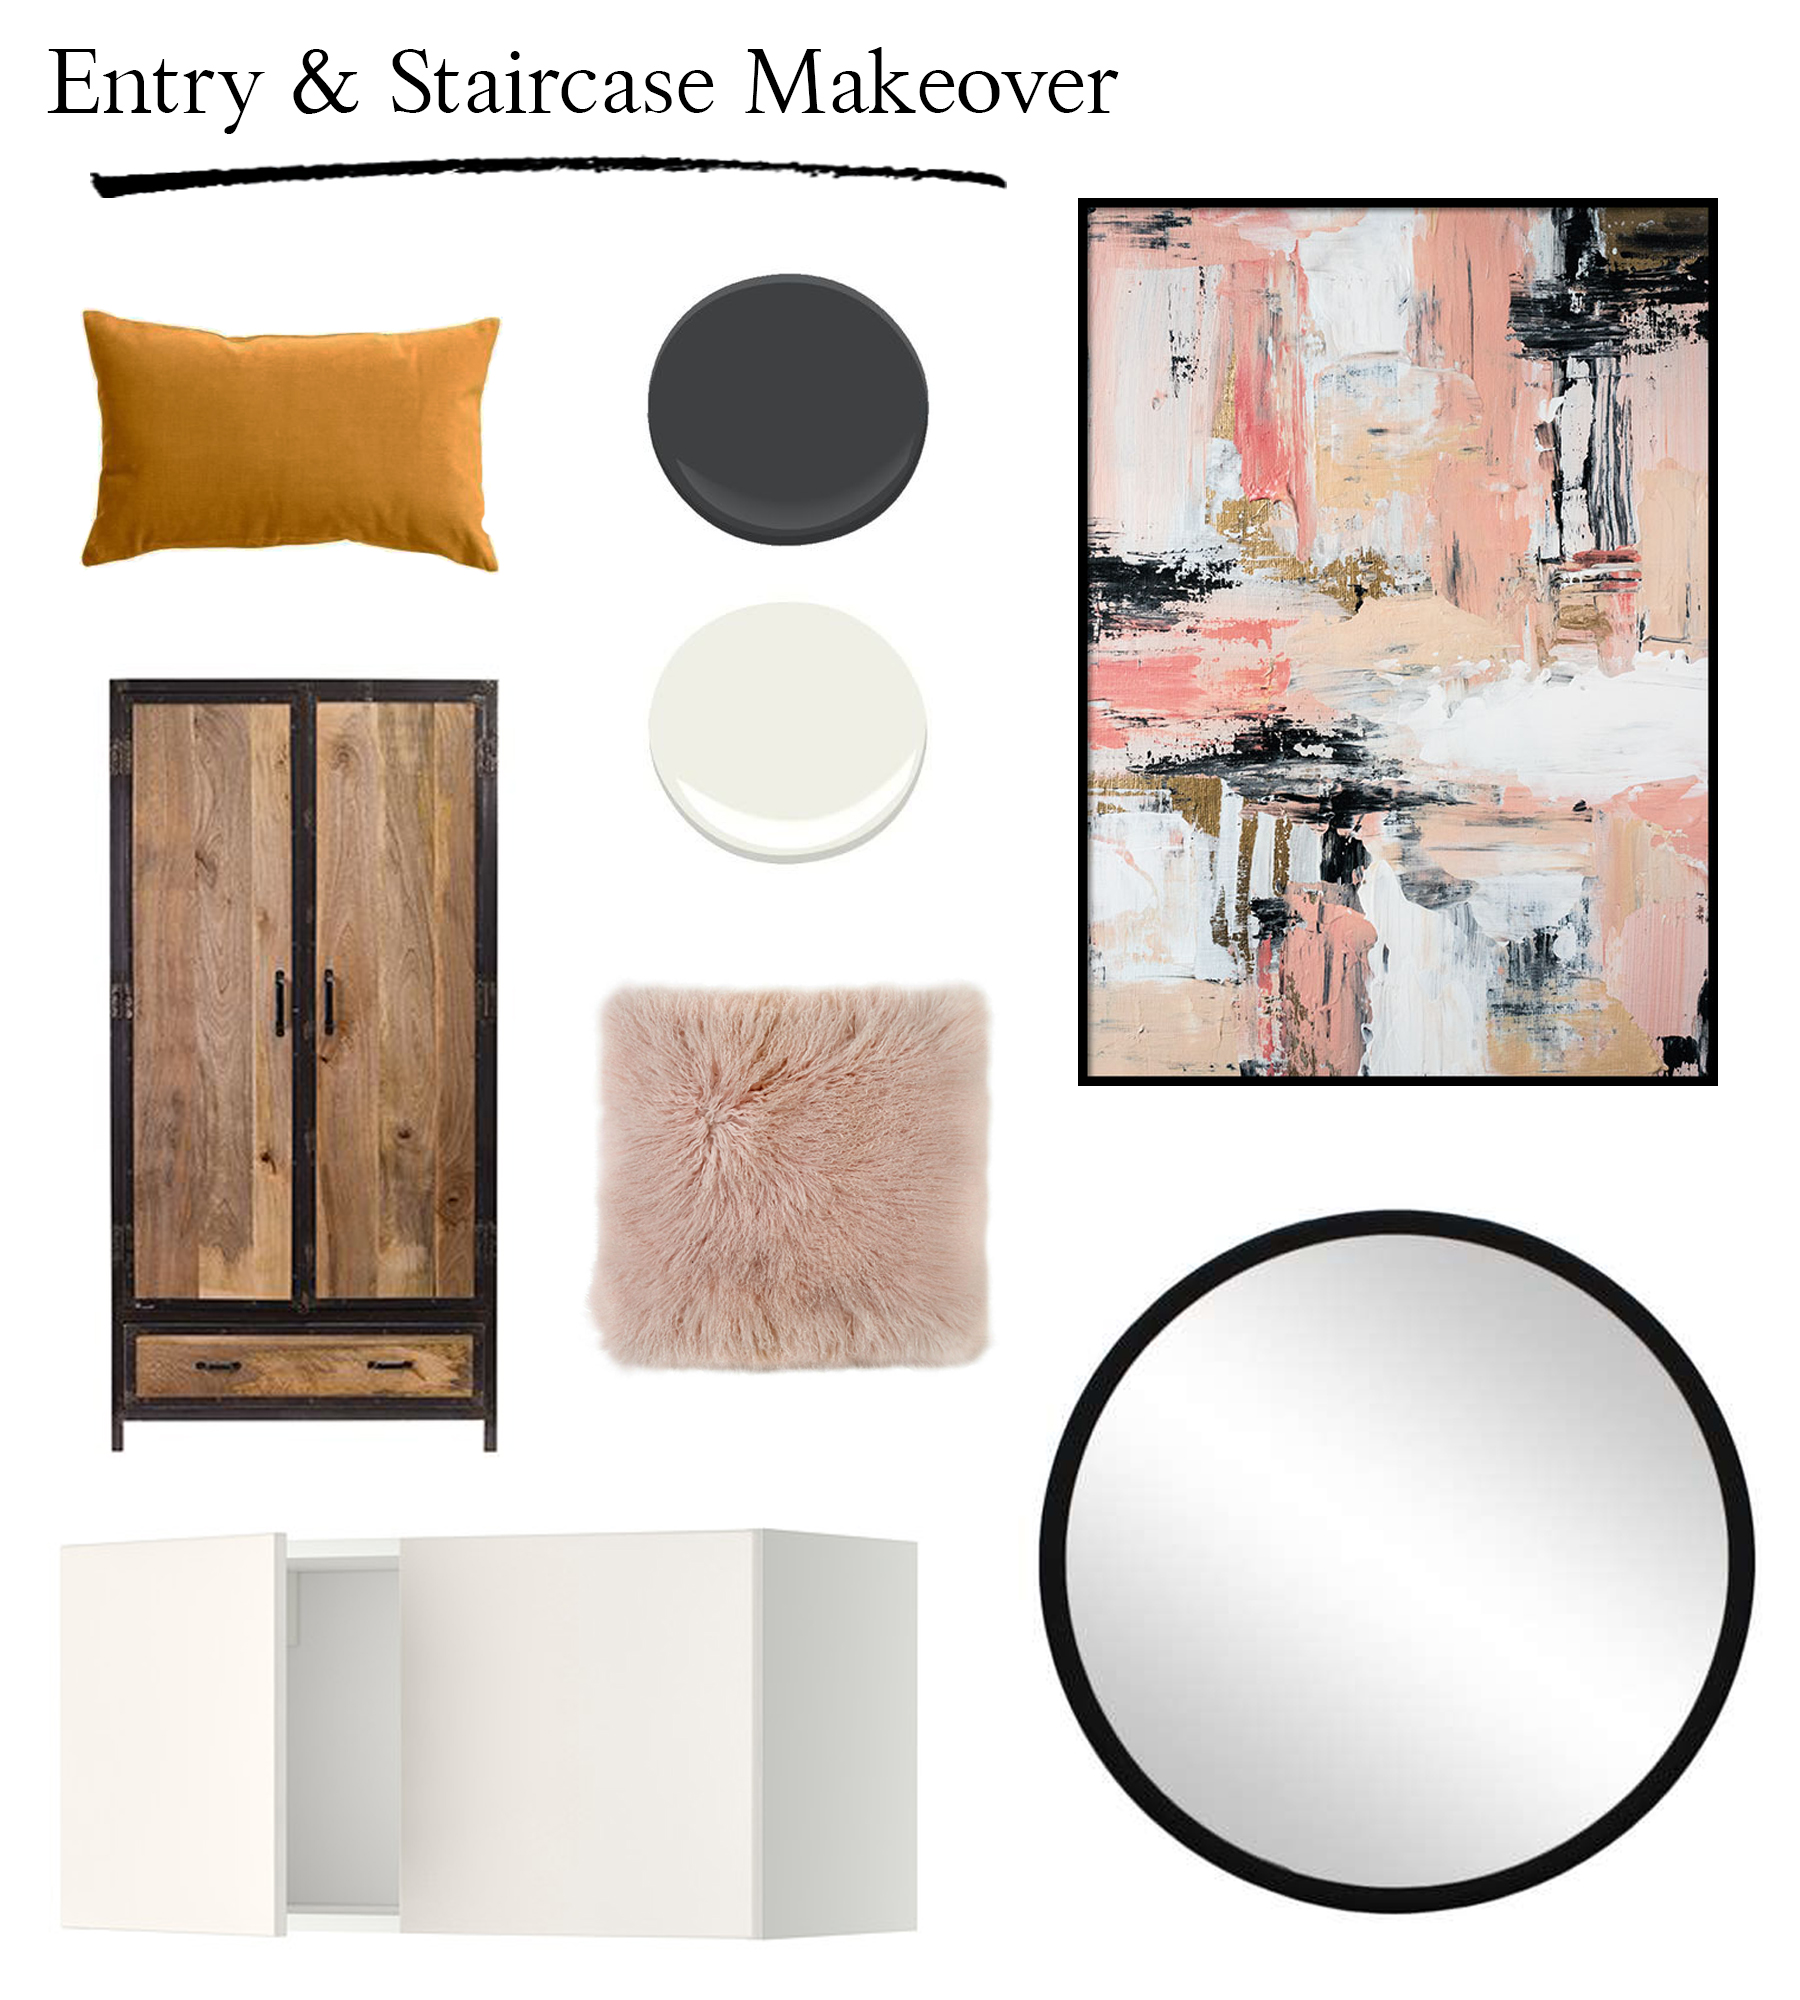 Preciously Me blog : Entry and Staircase Makeover inspiration board - The plan